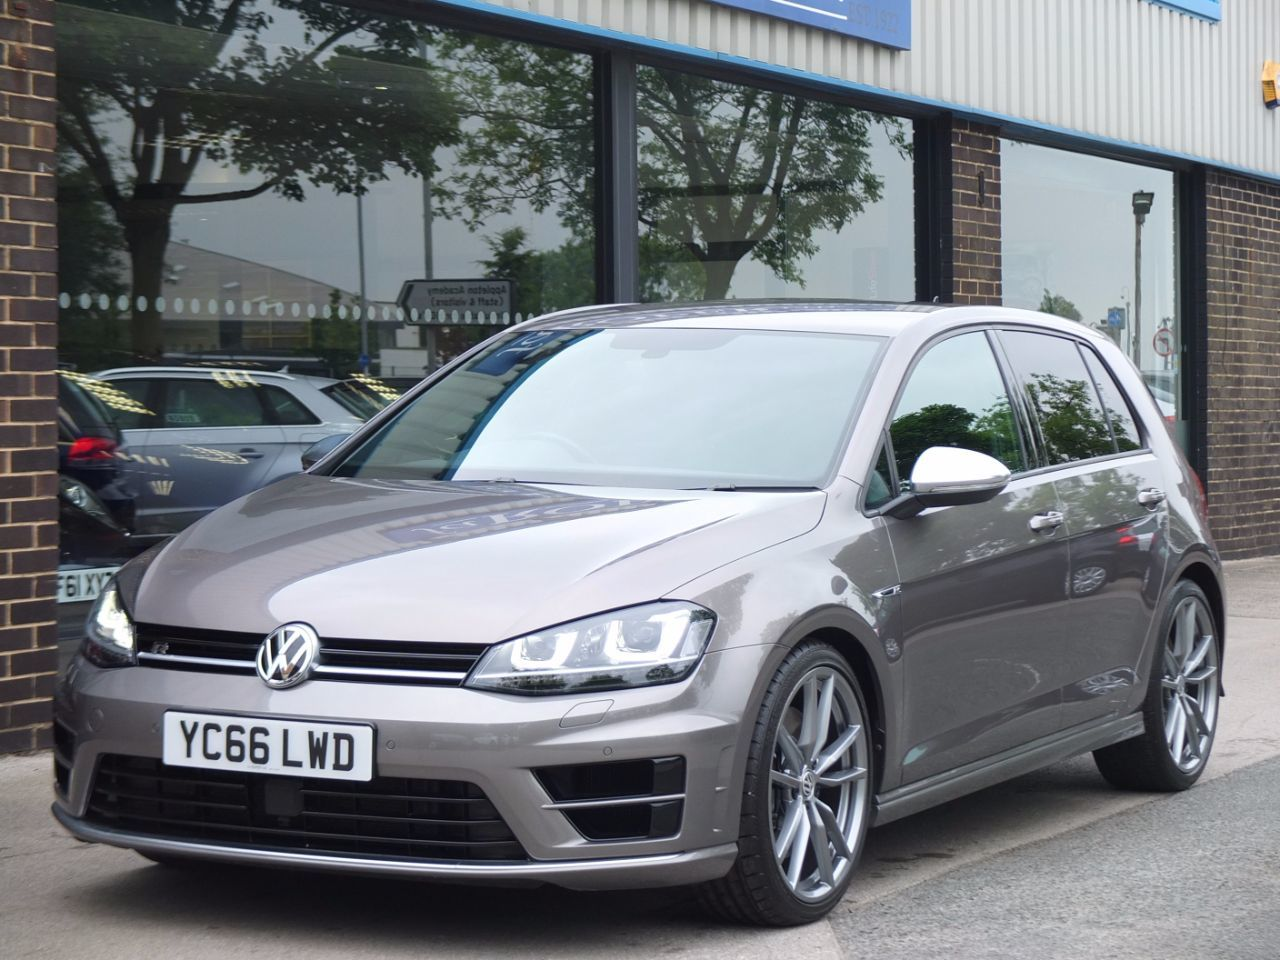 Volkswagen Golf 2.0 TSI R 4MOTION 5 Door DSG 300ps Hatchback Petrol Limestone Grey MetallicVolkswagen Golf 2.0 TSI R 4MOTION 5 Door DSG 300ps Hatchback Petrol Limestone Grey Metallic at fa Roper Ltd Bradford